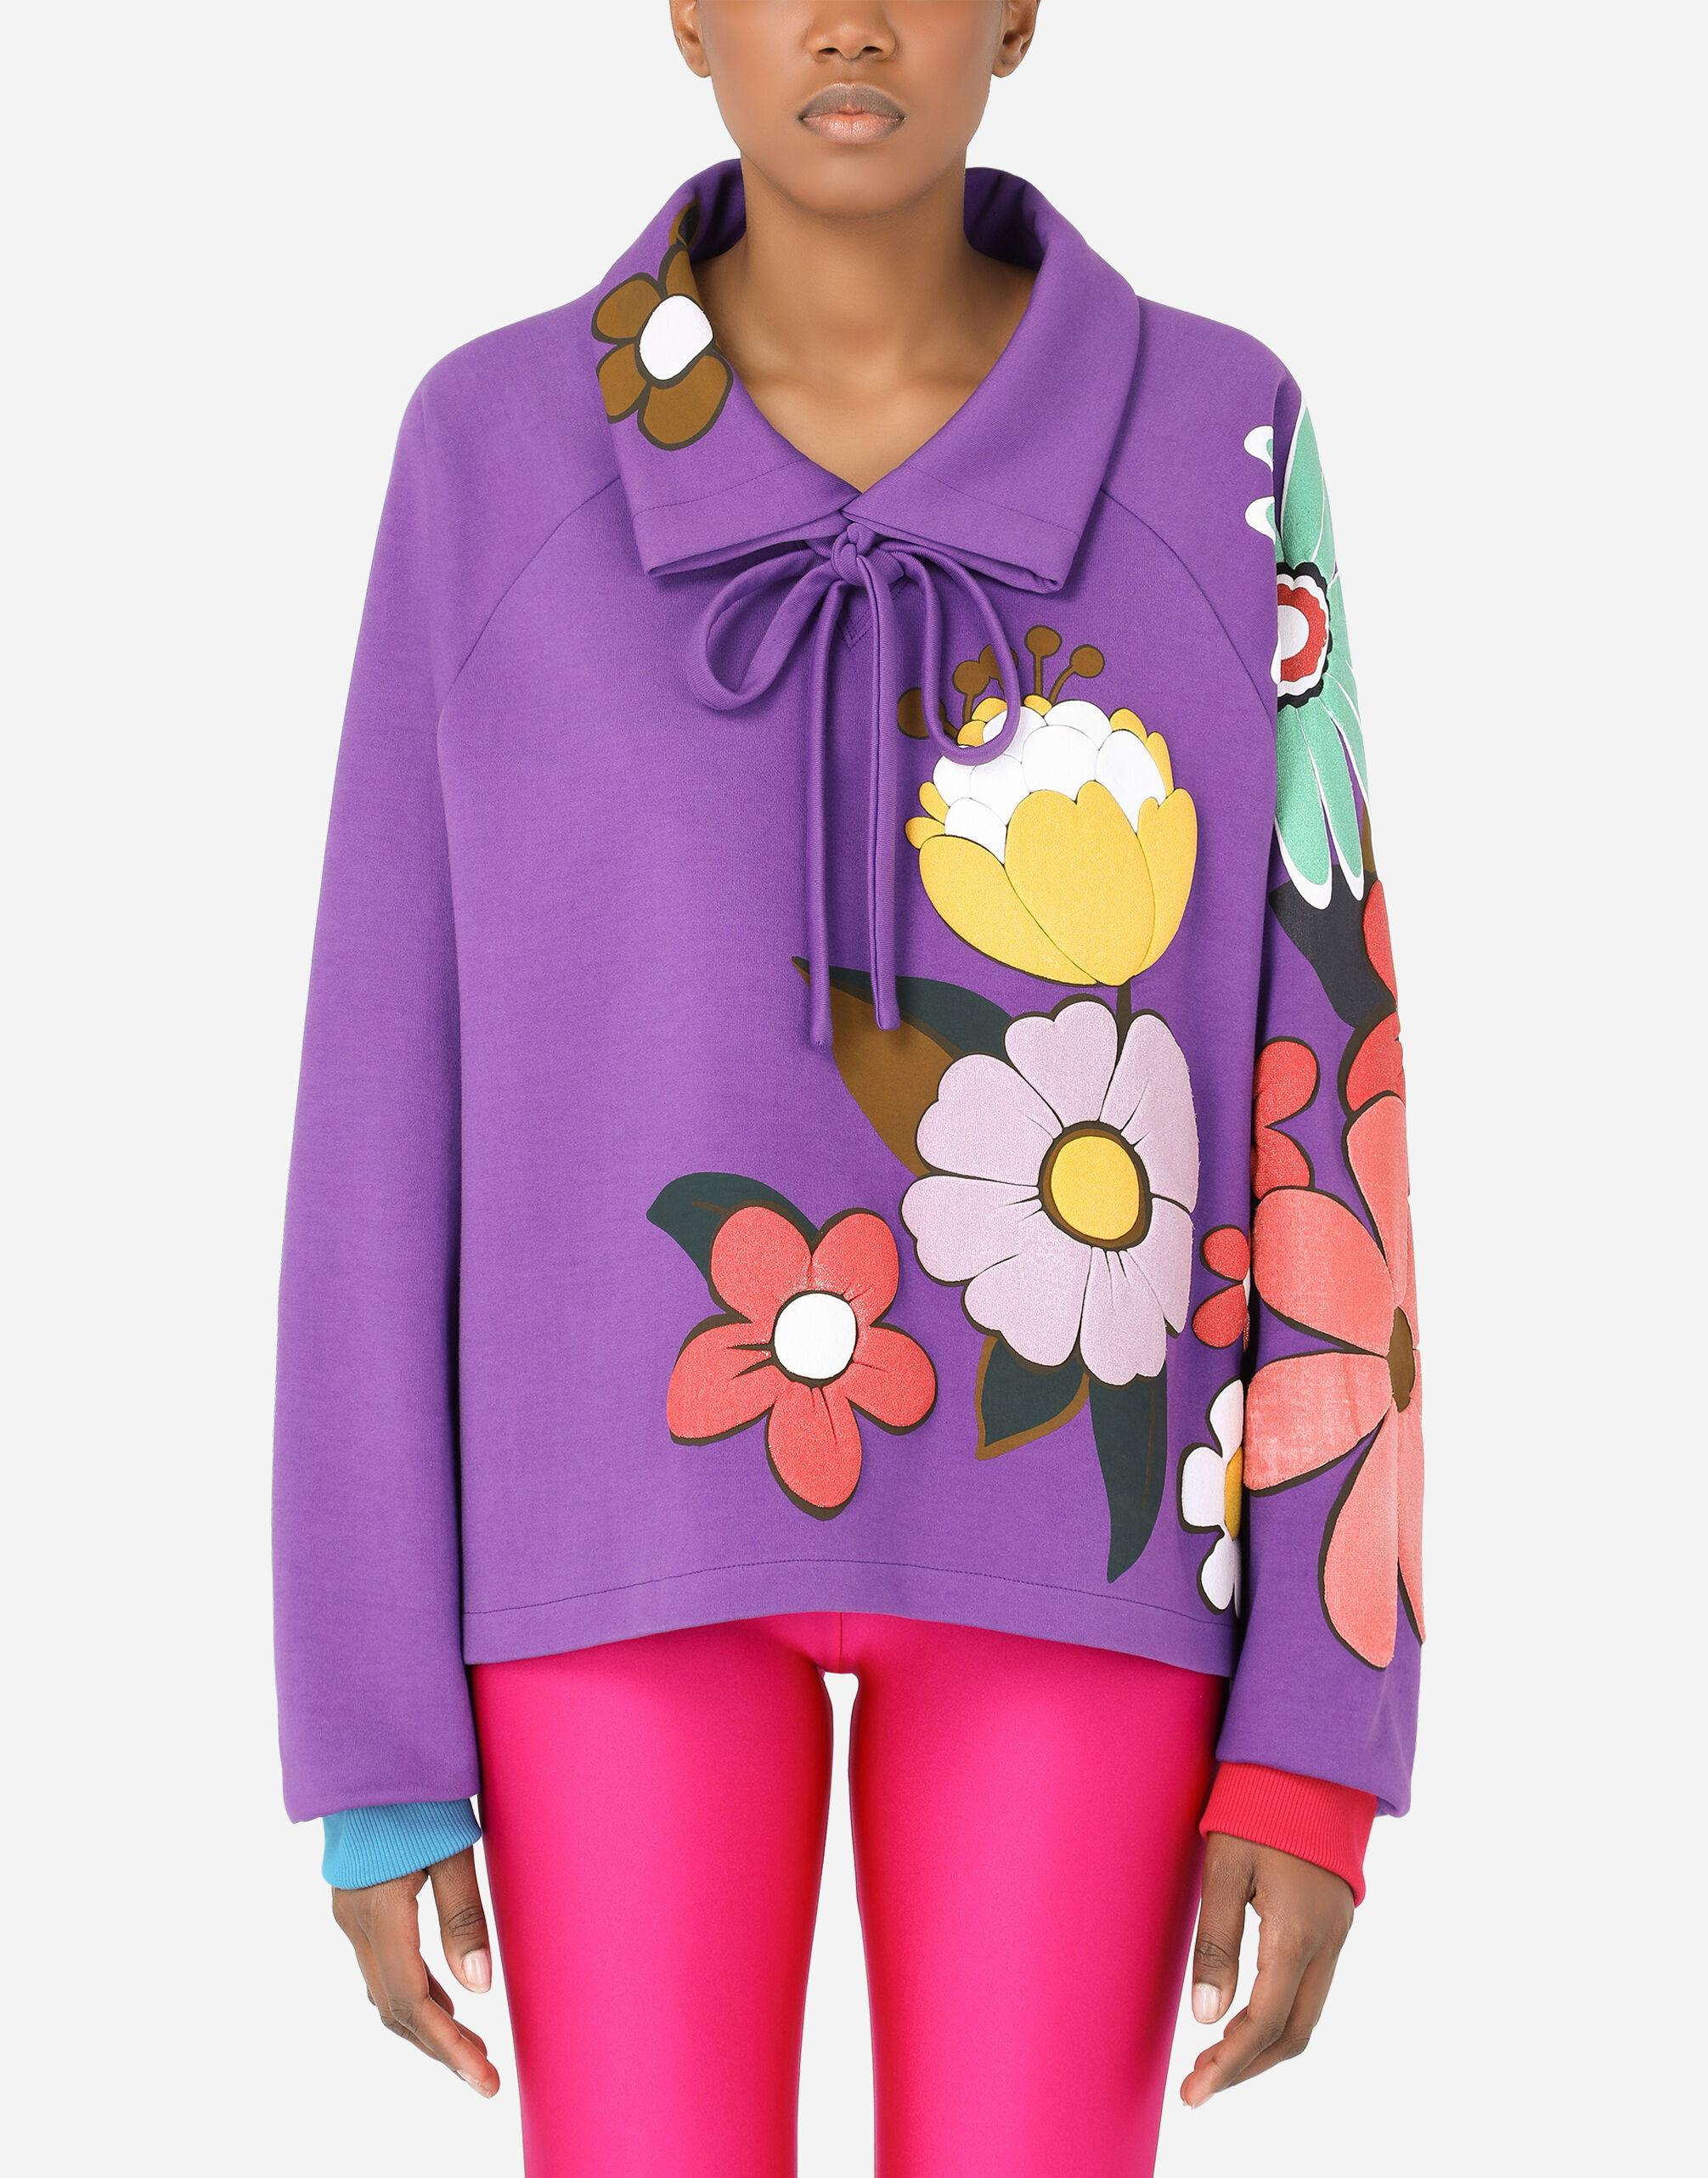 Jersey hoodie with floral patches